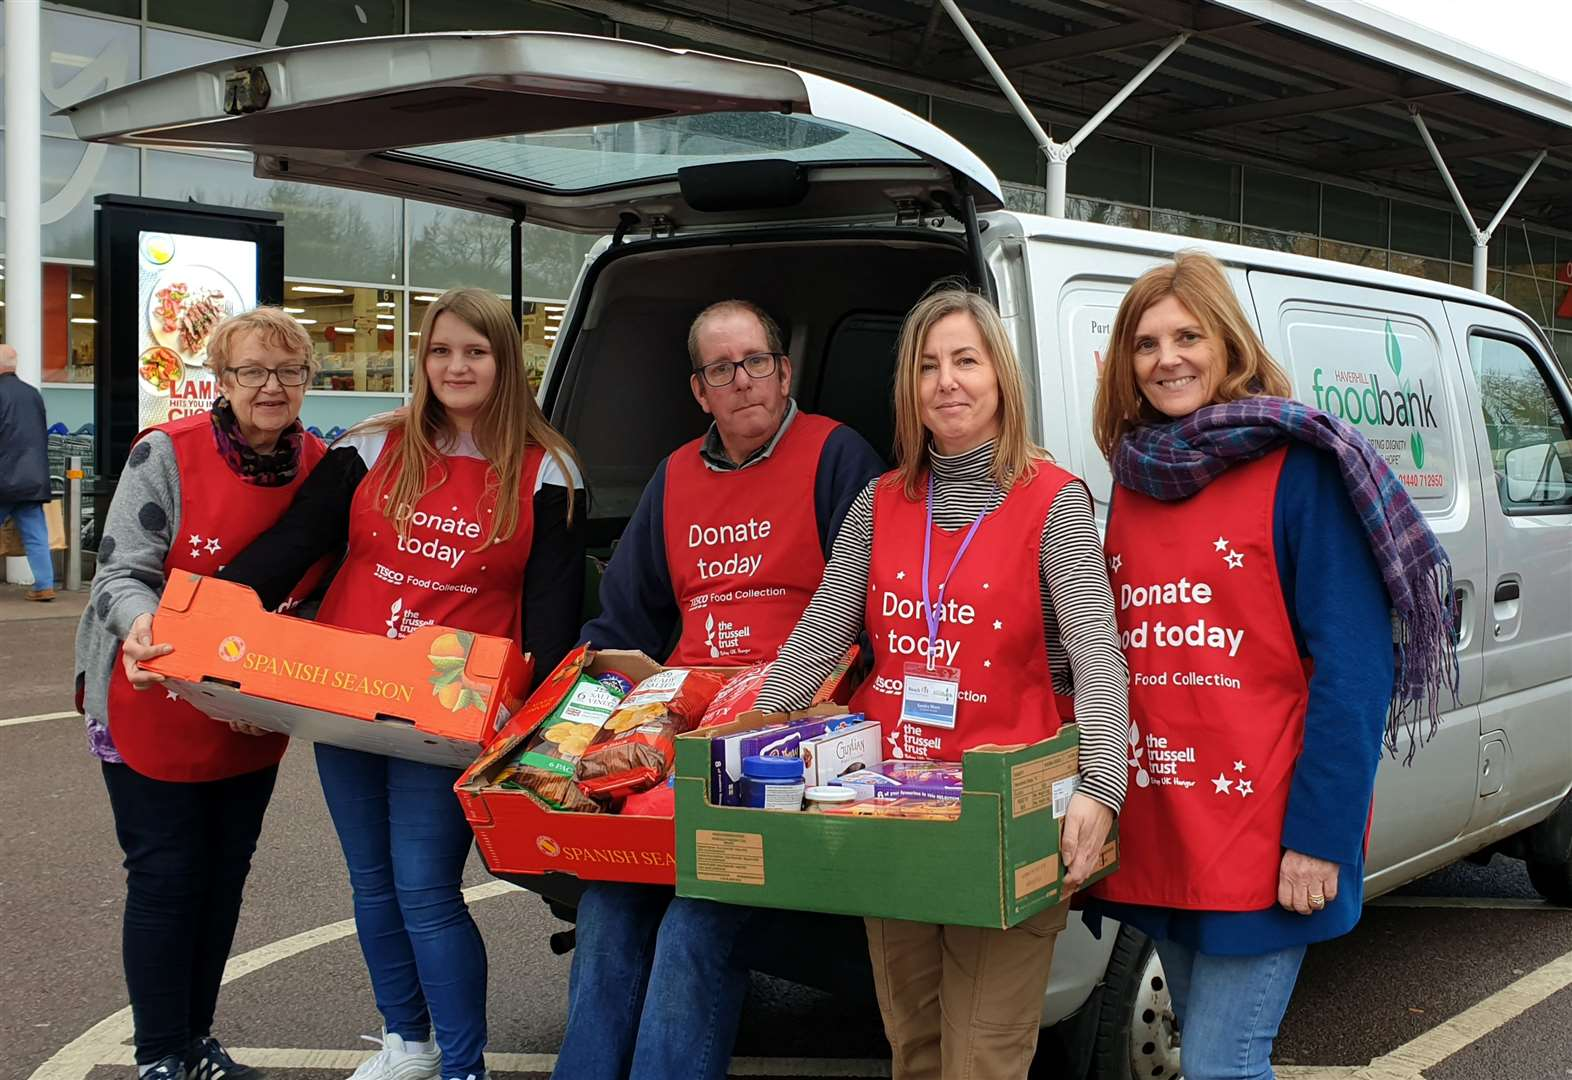 Generosity to foodbank collection was 'overwhelming'